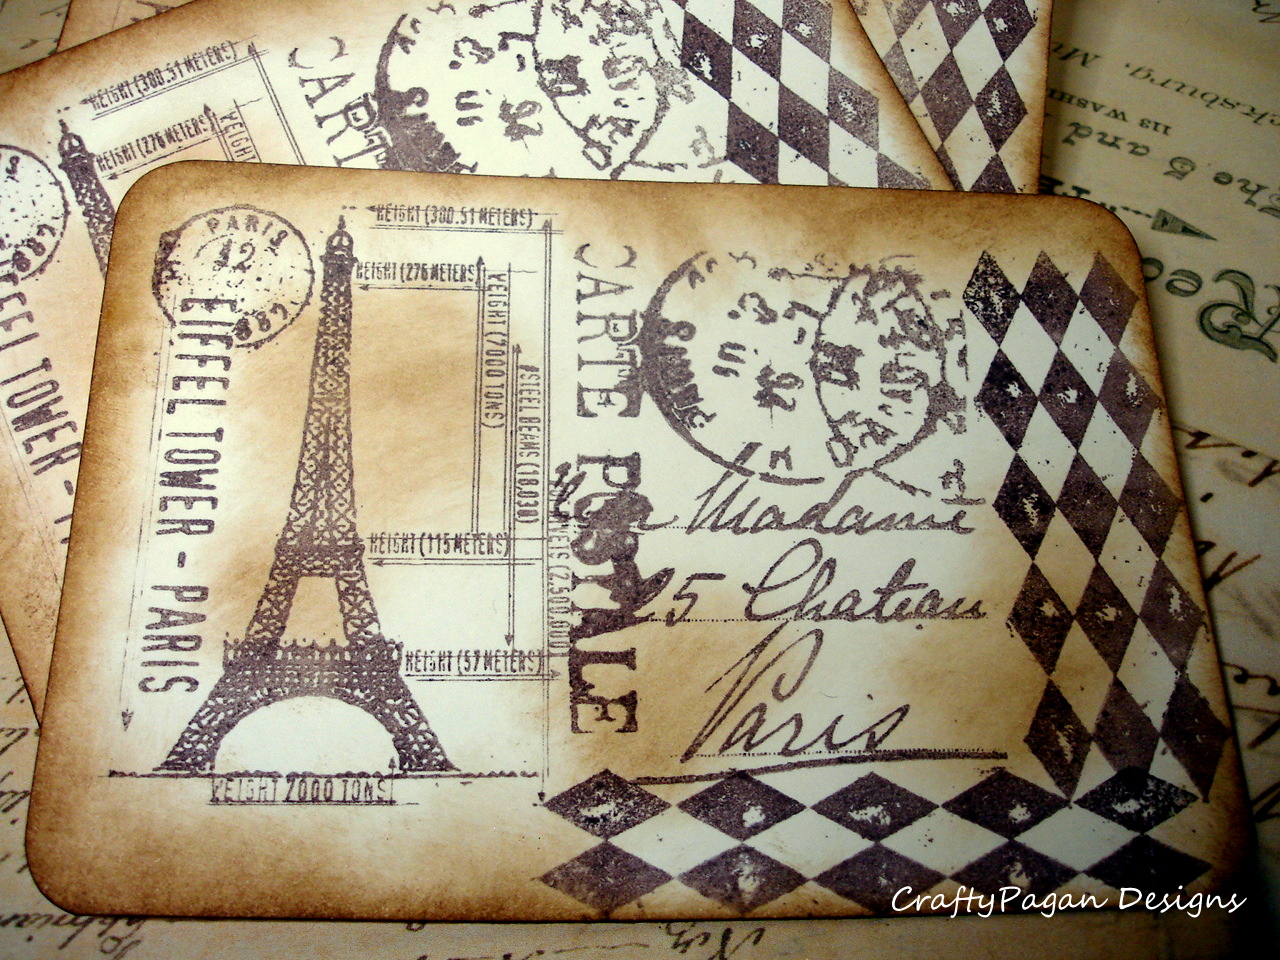 Crafty Pagan Designs - Vintage Postcards From Paris